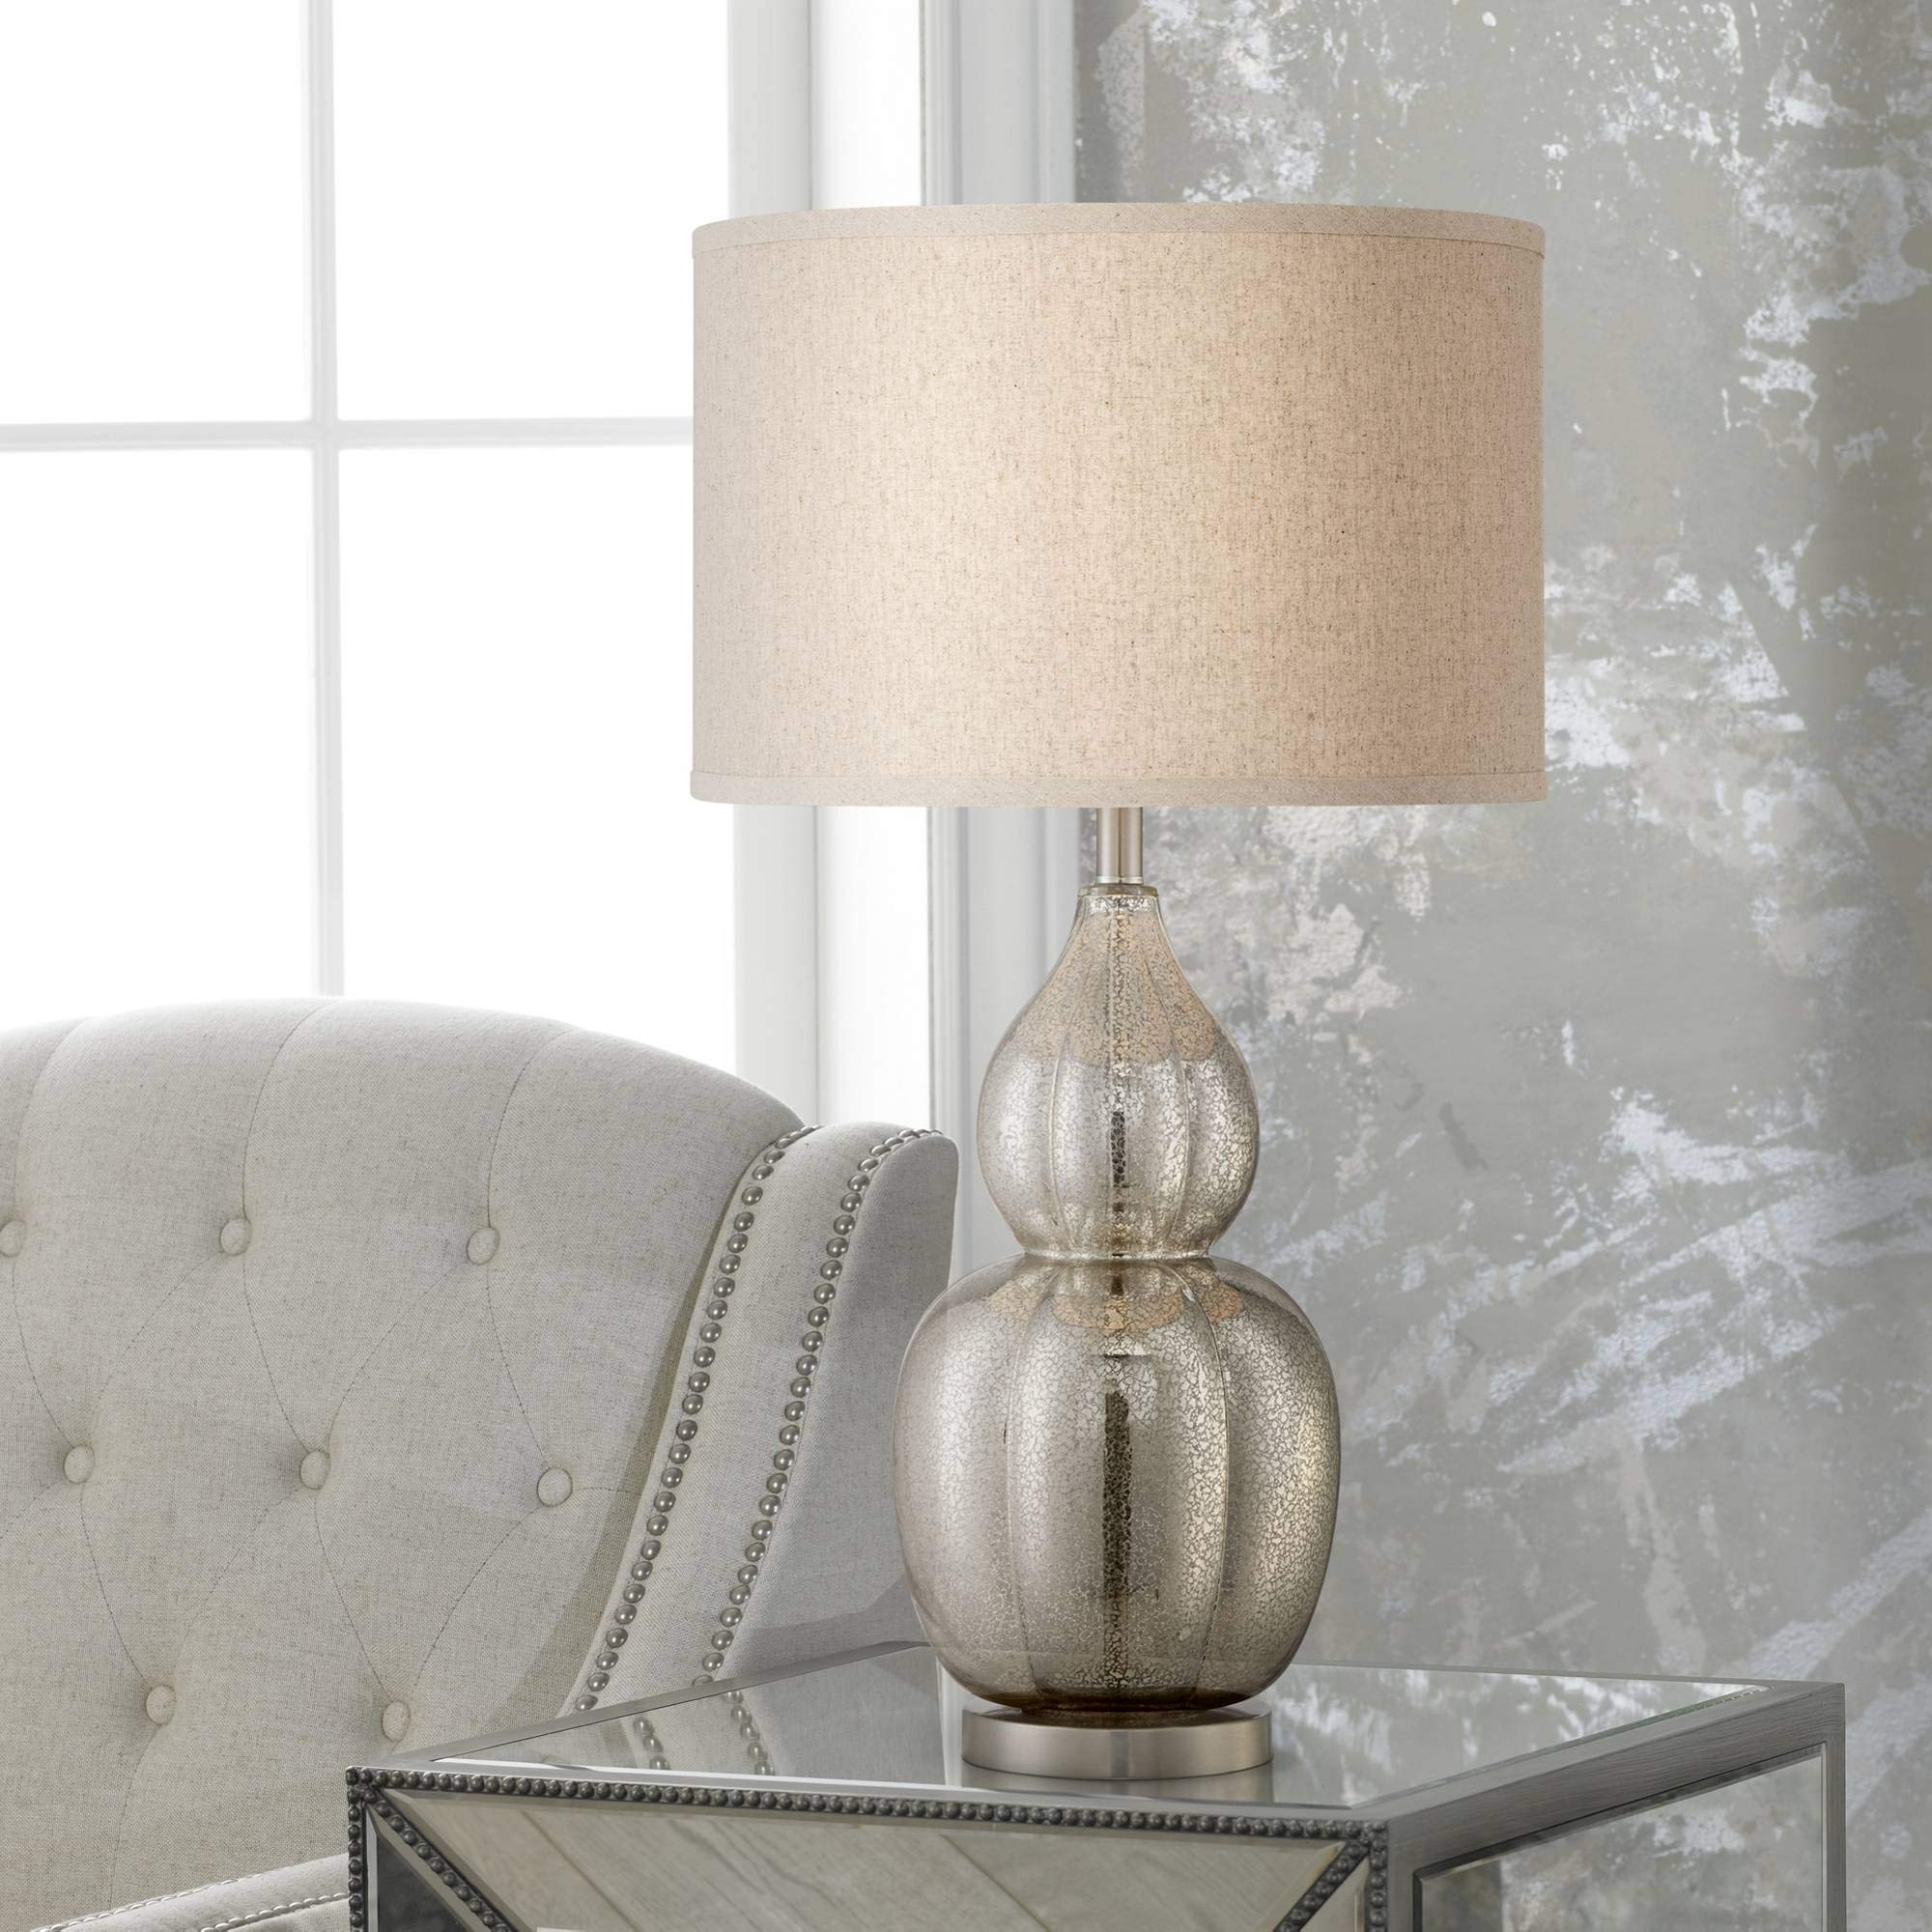 Jackie Coastal Table Lamp Fluted Mercury Glass Gourd Taupe Round Drum Shade for Living Room Family Bedroom Bedside - Possini Euro Design